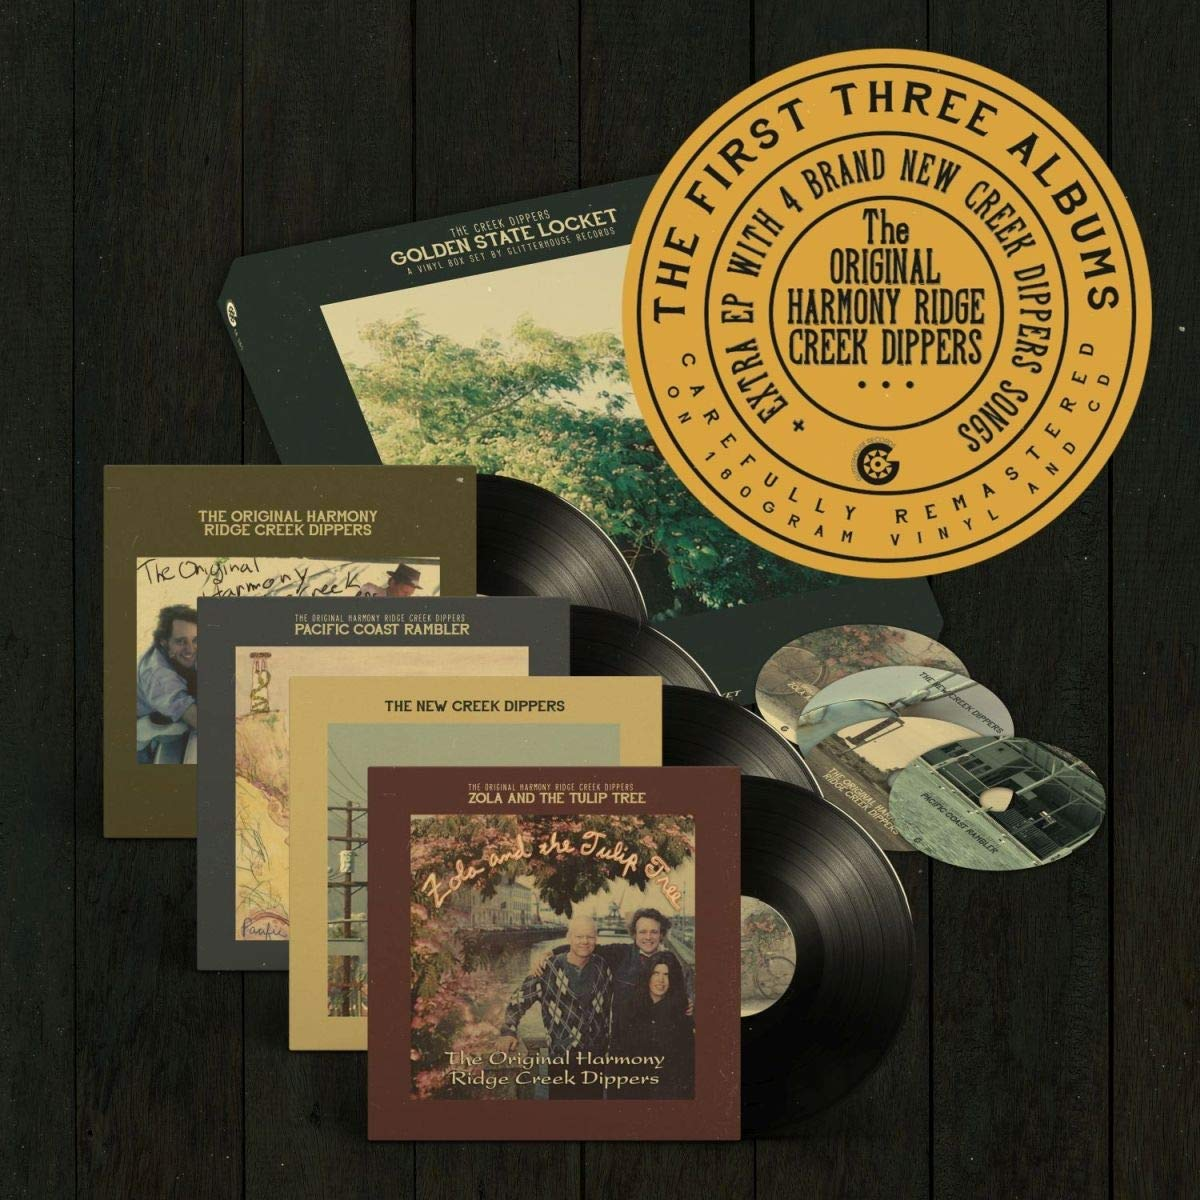 Vinilo : The Original Harmony Ridge Creekdippers - Golden State Locket (With CD, Boxed Set)